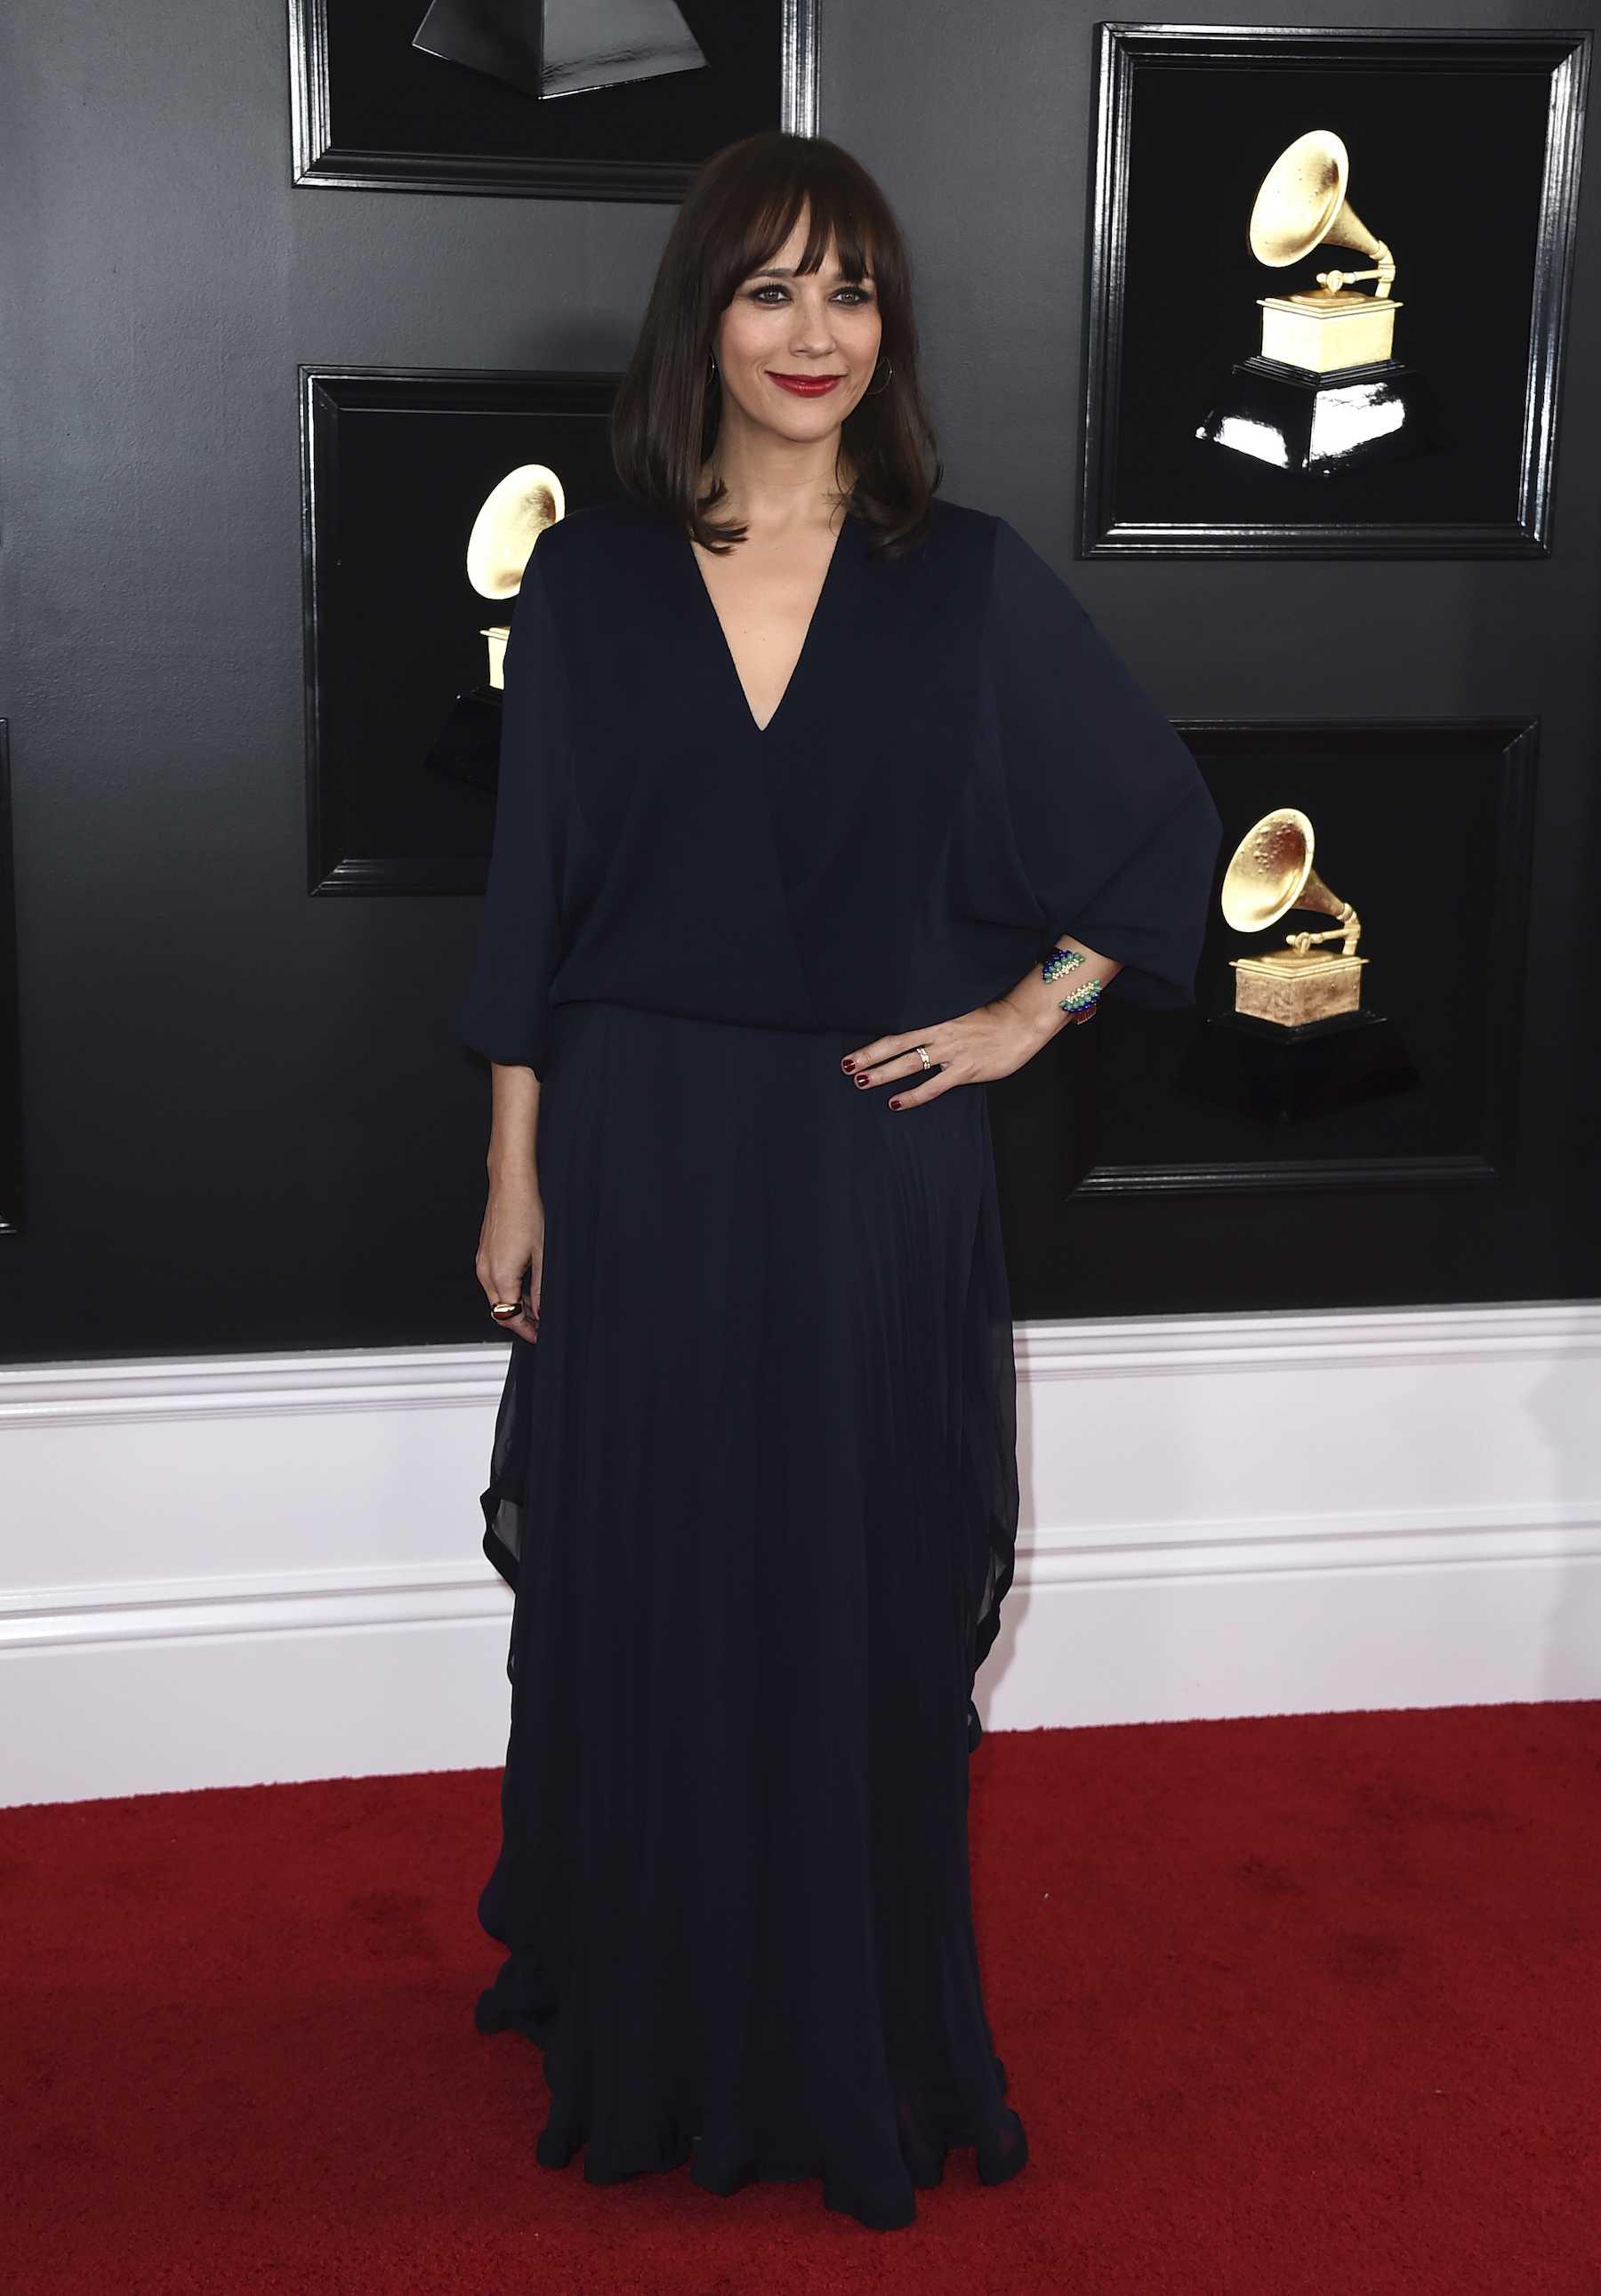 "<div class=""meta image-caption""><div class=""origin-logo origin-image ap""><span>AP</span></div><span class=""caption-text"">Rashida Jones arrives at the 61st annual Grammy Awards at the Staples Center on Sunday, Feb. 10, 2019, in Los Angeles. (Jordan Strauss/Invision/AP)</span></div>"